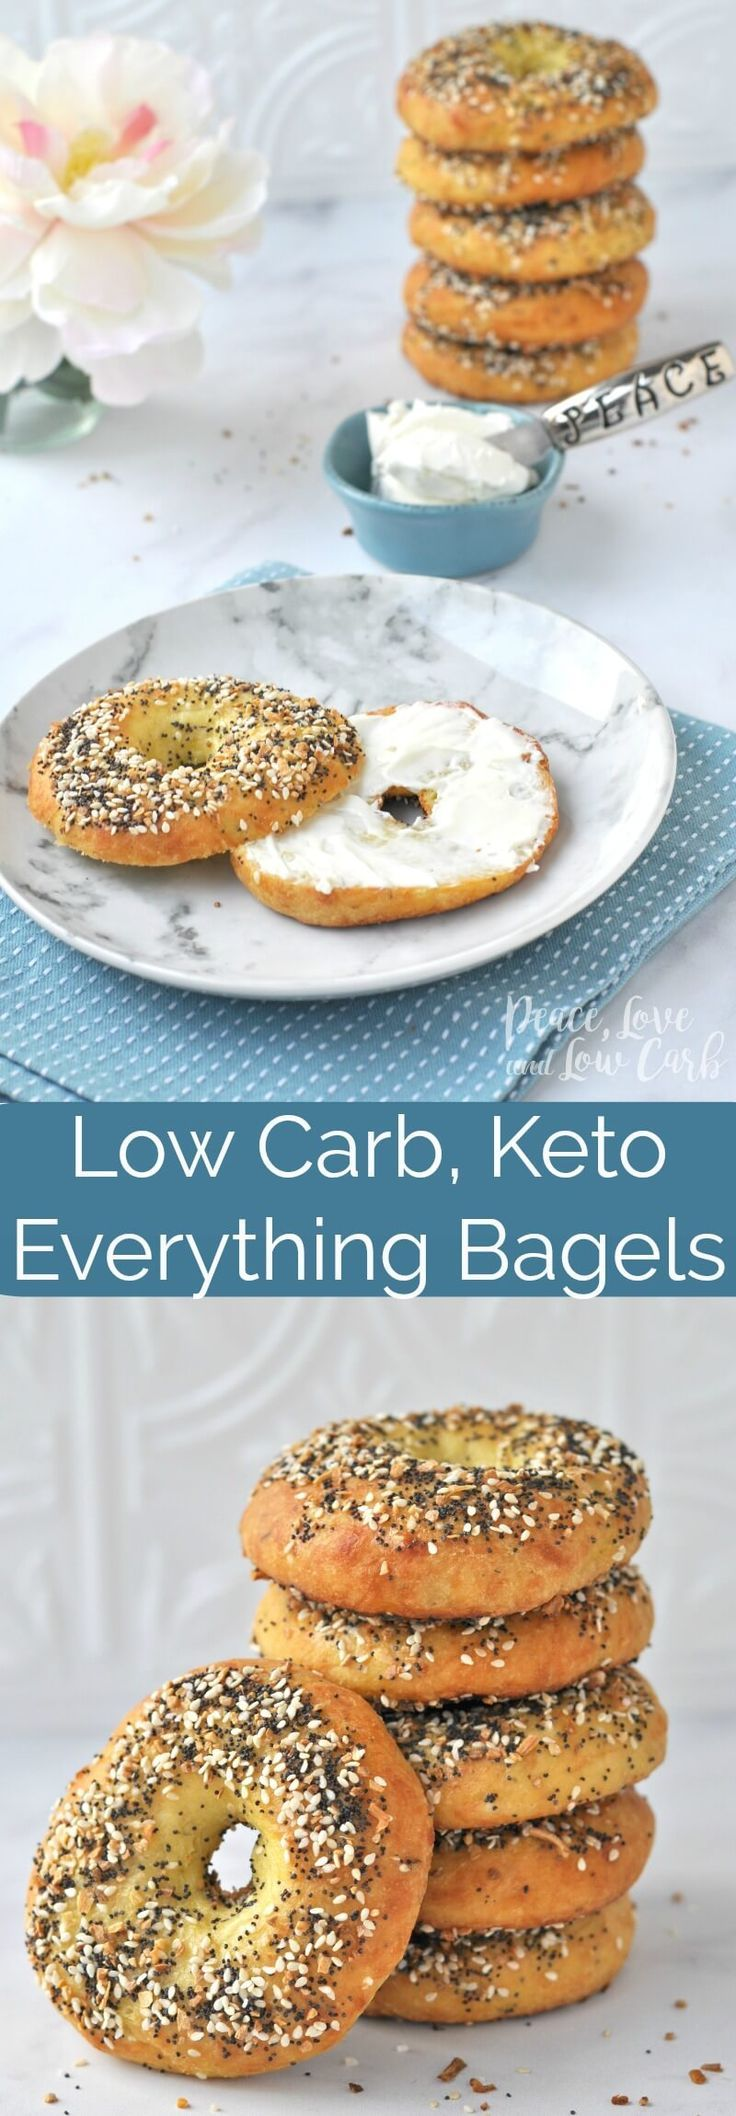 559 best No Carbohydrate Crust & Bread images on Pinterest | Bread ...